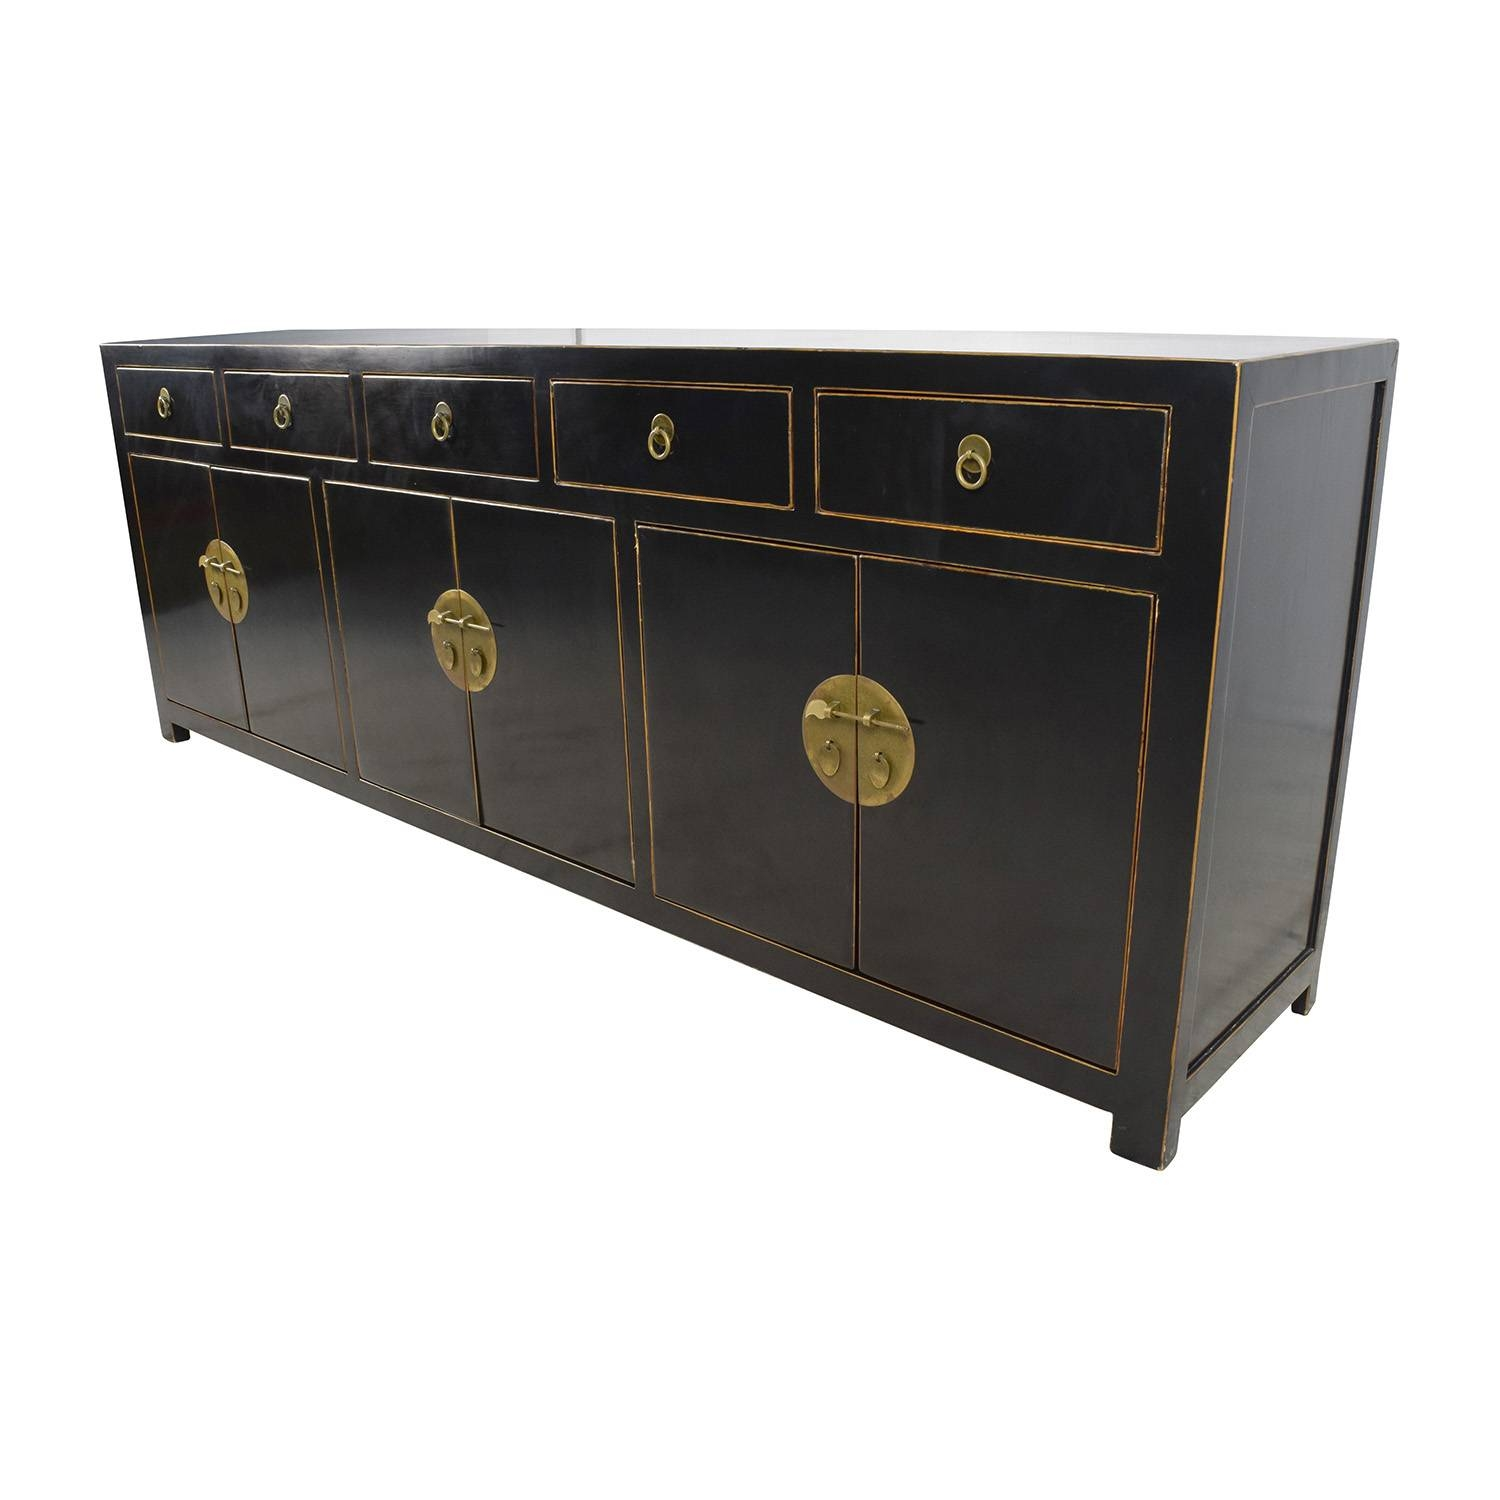 85% Off – Custom Made Black Drawer And Cabinet Sideboard / Storage Inside Black Sideboard Cabinets (View 8 of 15)